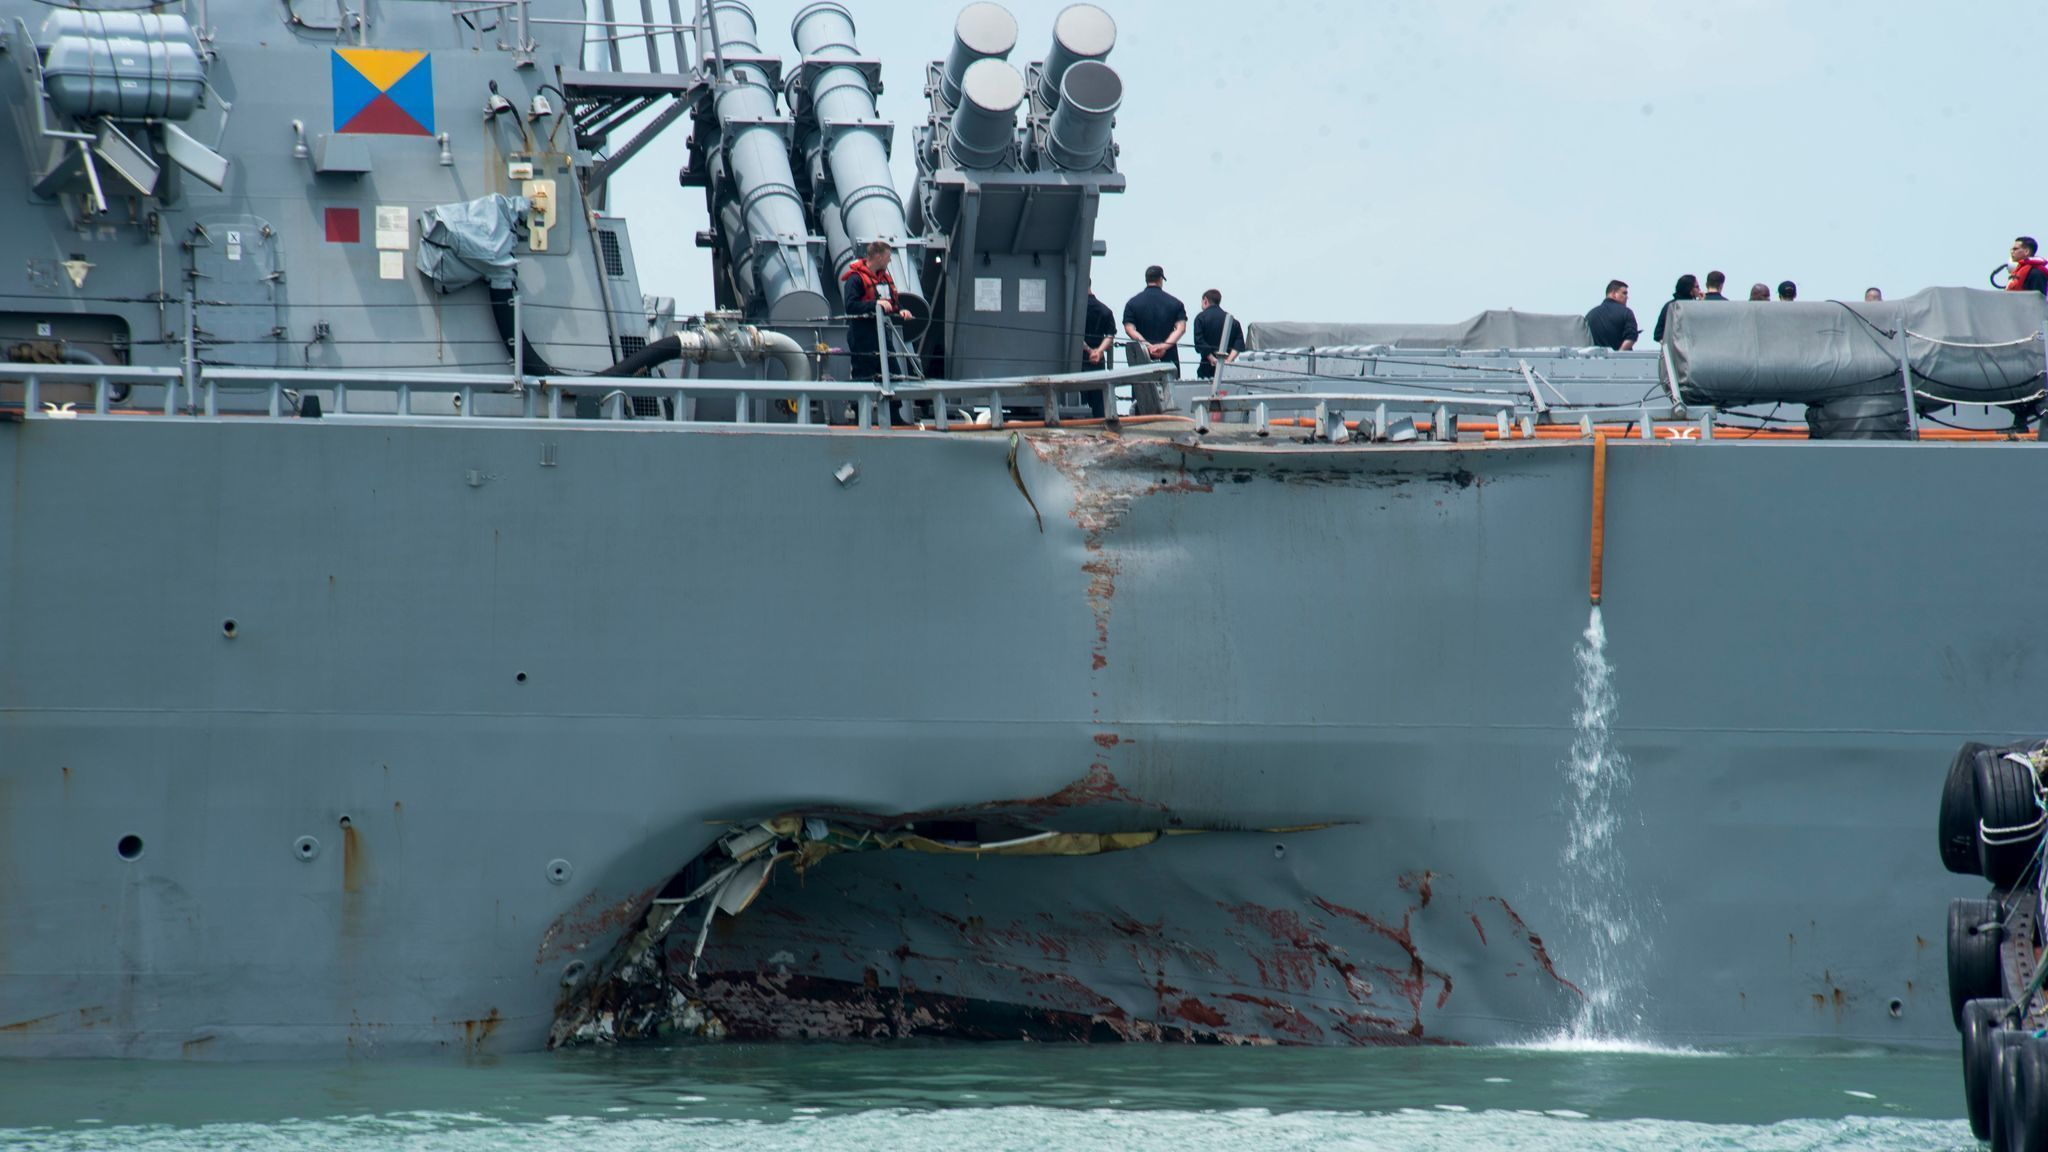 Some remains of Navy sailors found after USS John McCain crash